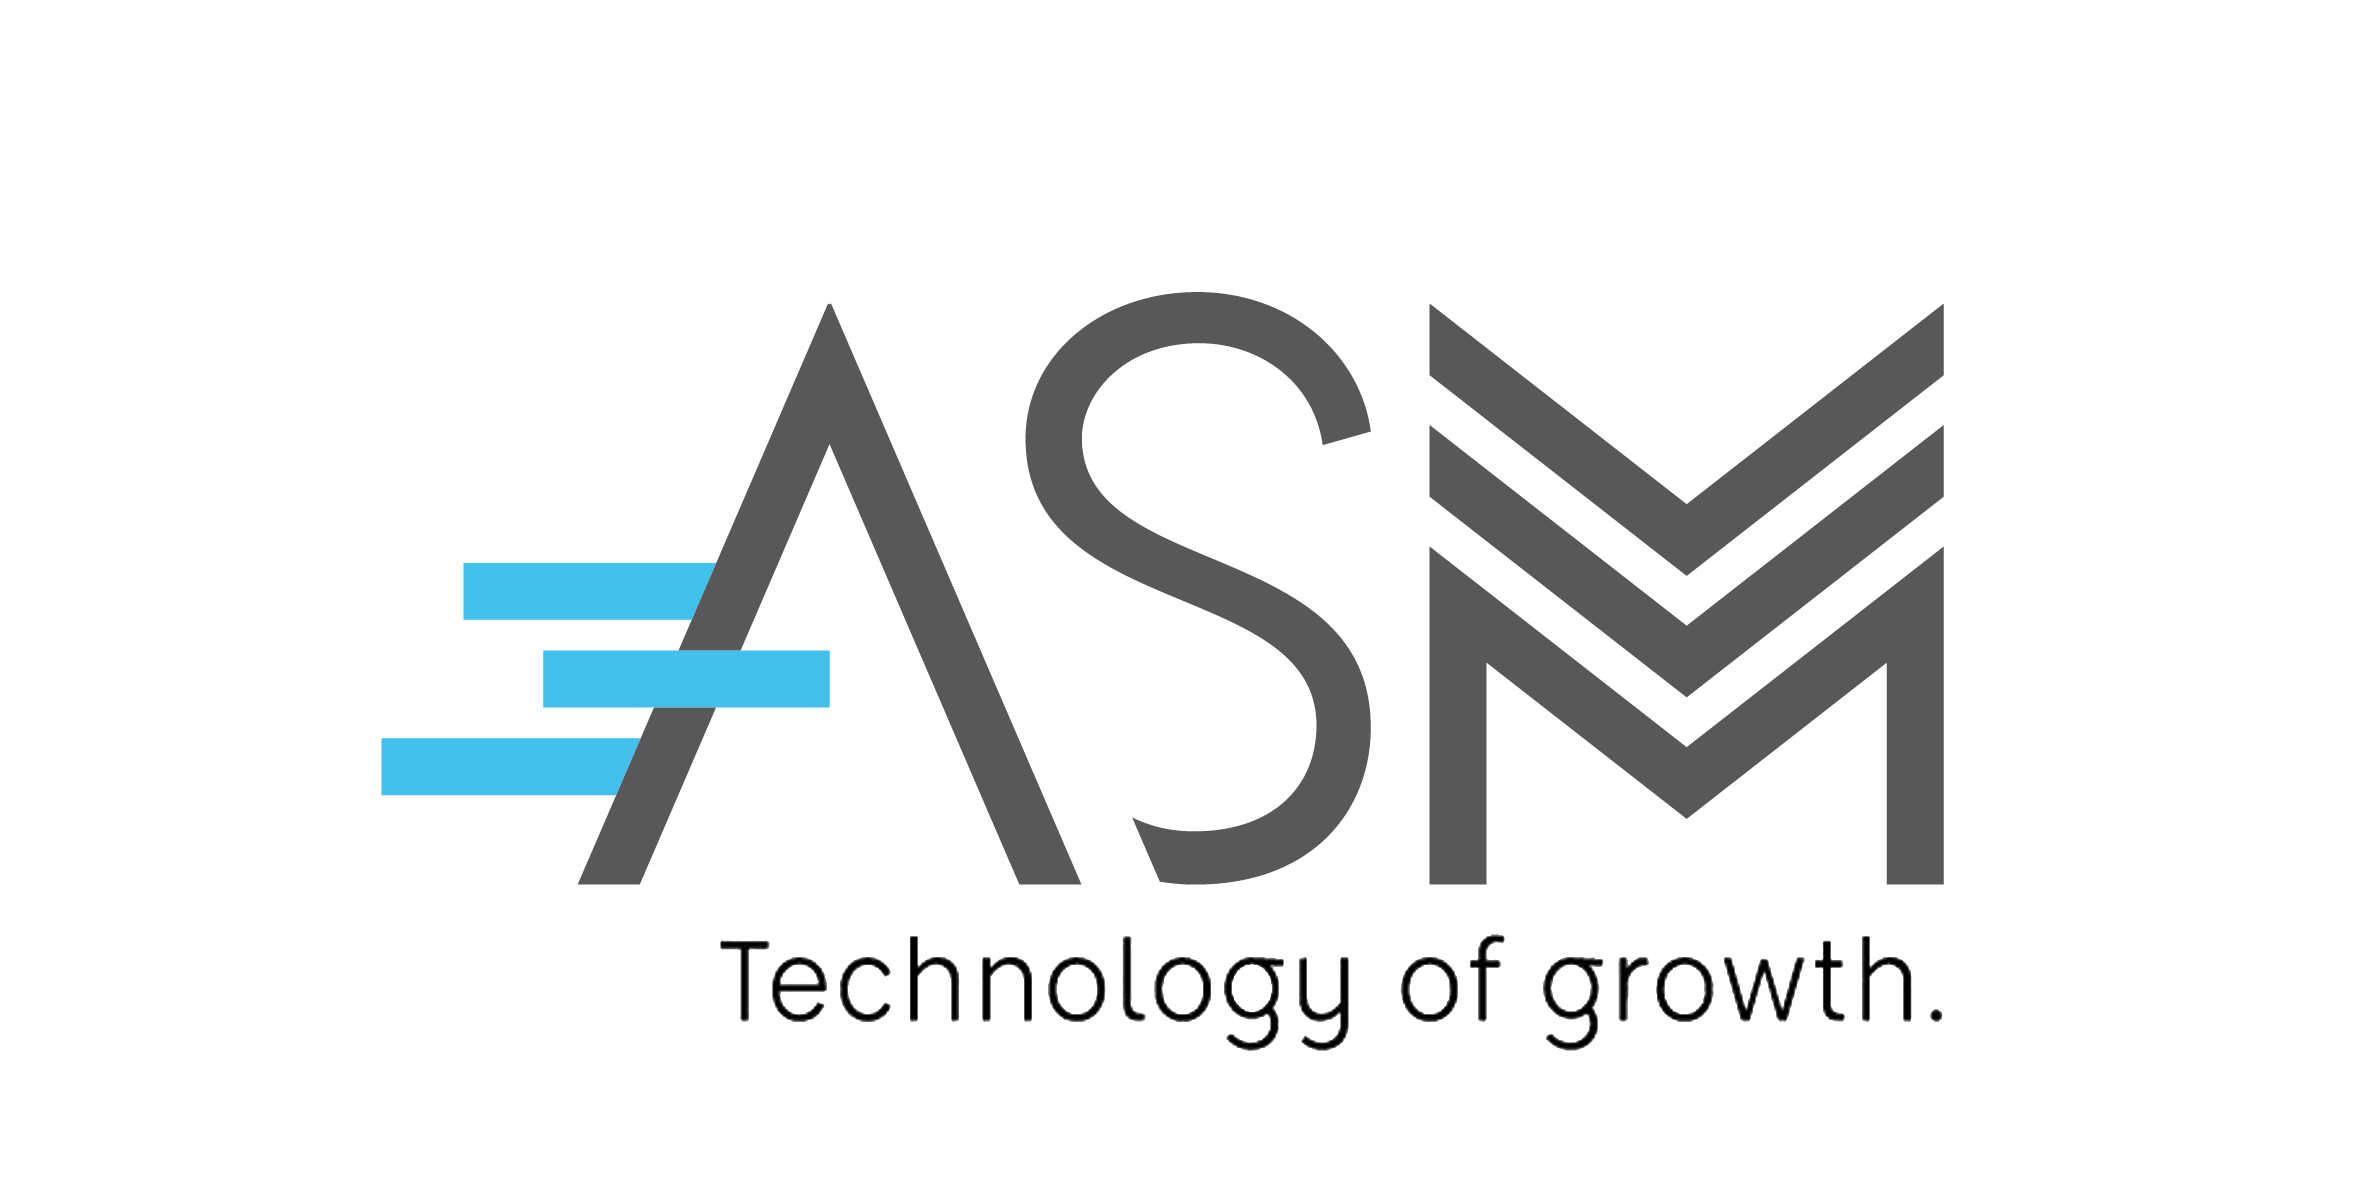 ASM Technology